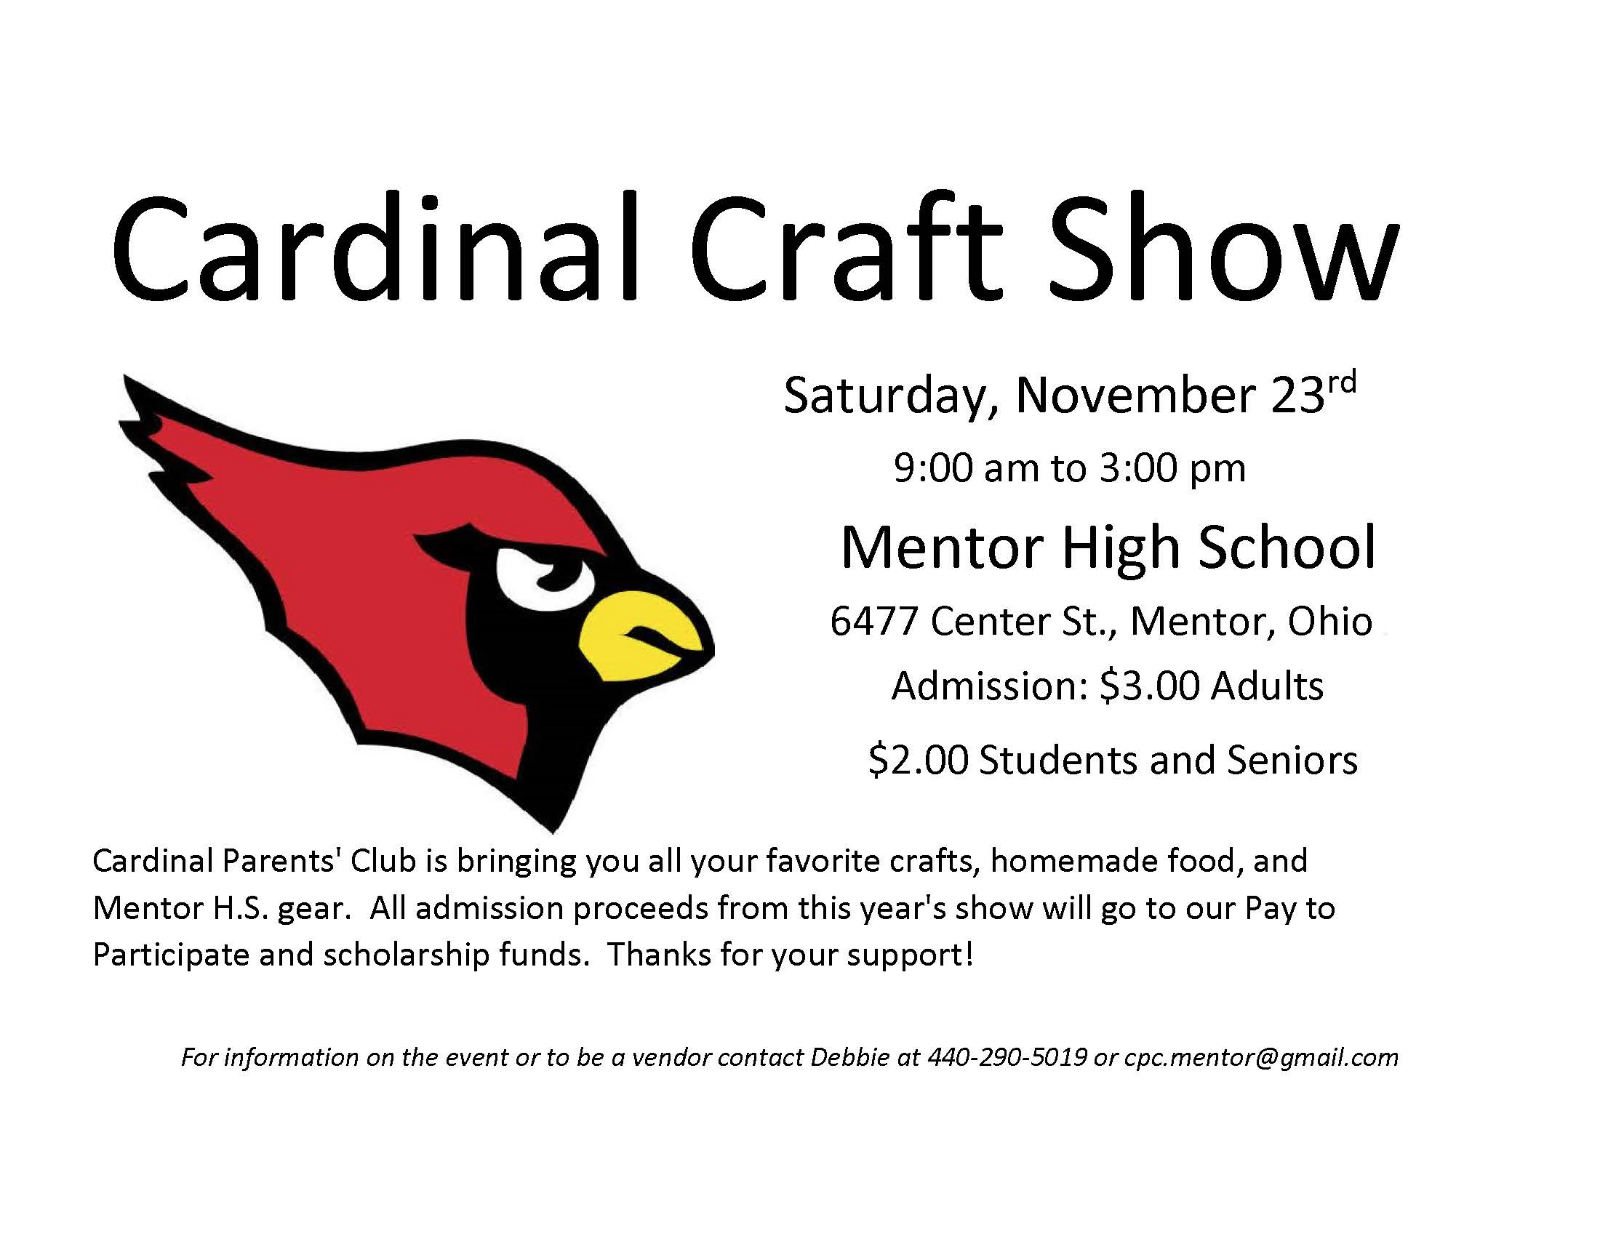 Cardinal Parents Club Annual Craft Show Saturday